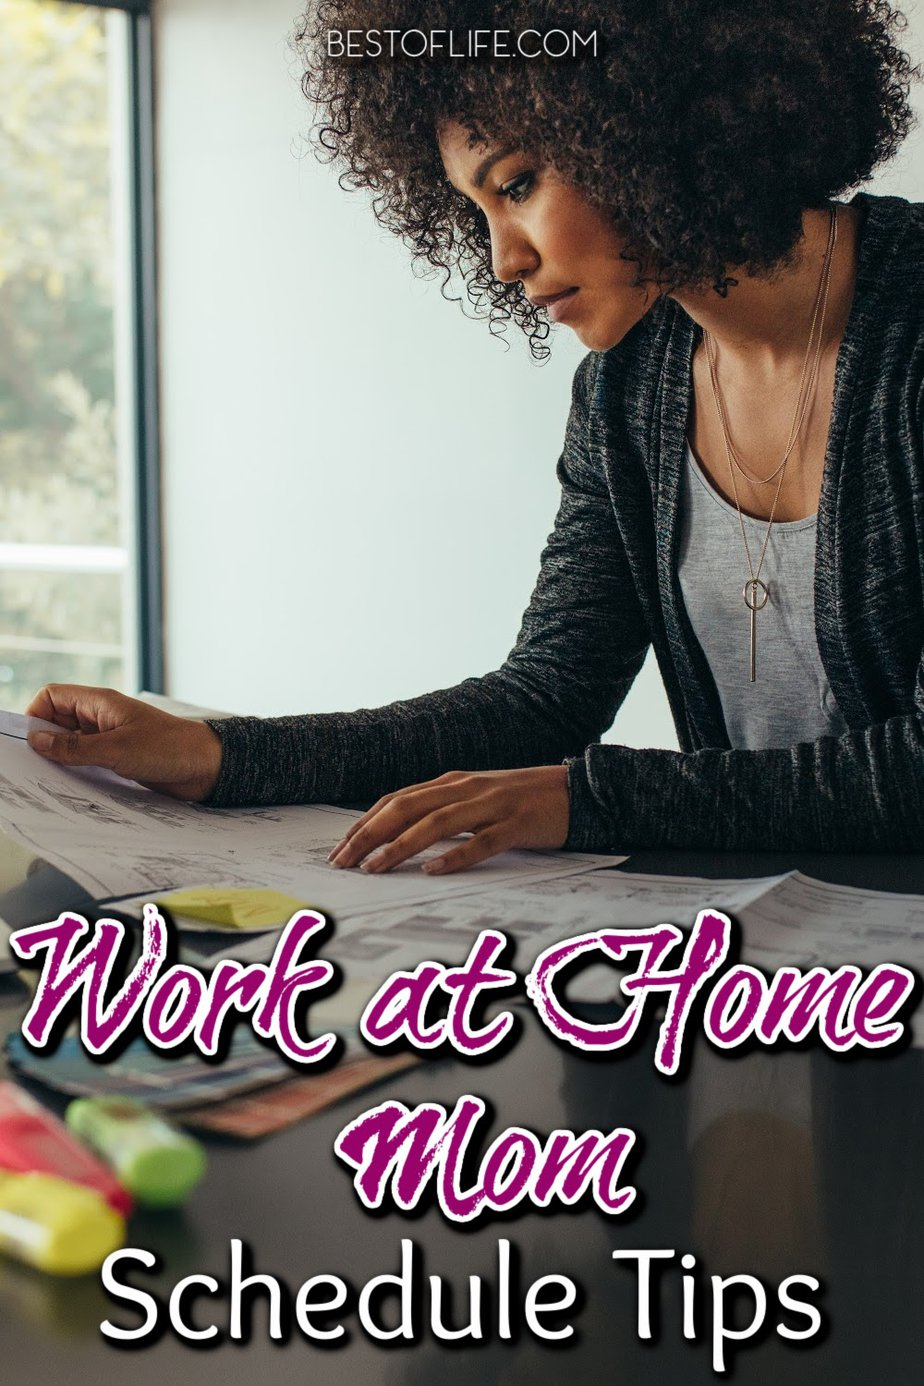 If you work from home, you can be happier and more motivated each day as long as you use the best work at home mom schedule tips. Time Management Tips for Moms | Work From Home Tips | Tips for Working from Home | Scheduling Ideas for Moms | Busy Mom Ideas #working #moms via @thebestoflife